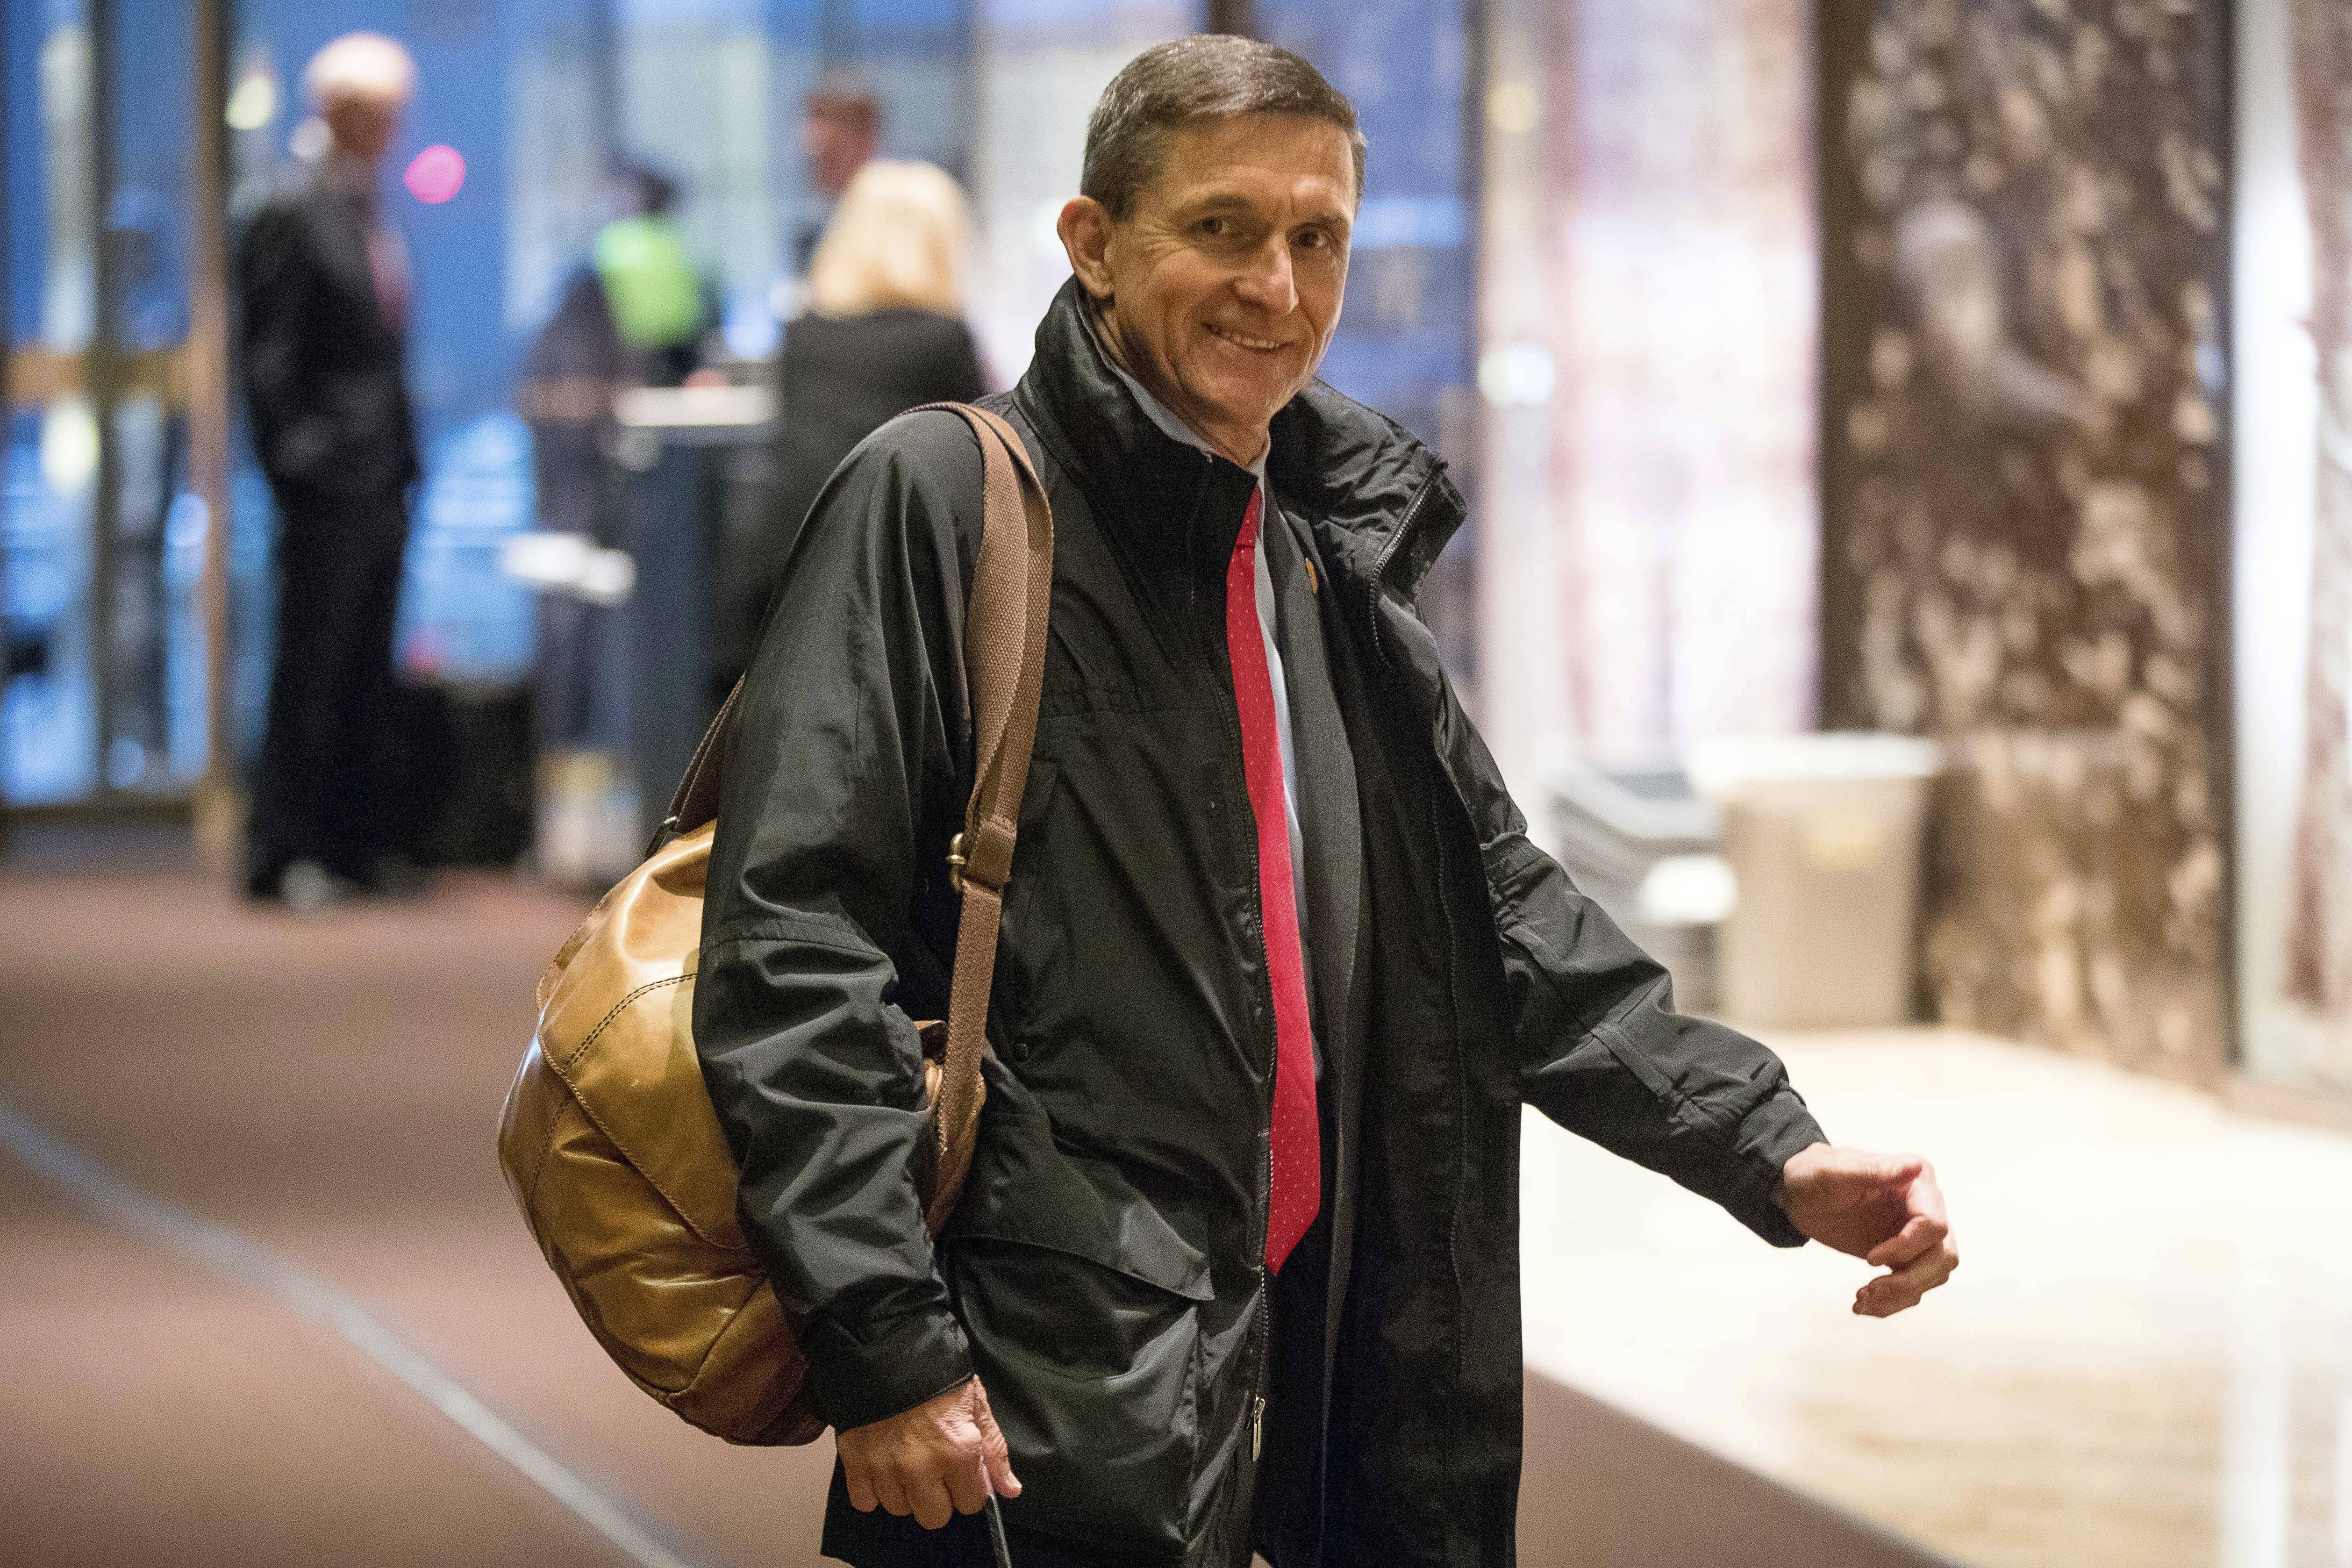 Former National Security Adviser Michael Flynn will provide some documents to the Senate intelligence committee as part of its probe into Russia's meddling in the 2016 election. A person close to Flynn says that he will be turning over documents related to two of his businesses as well as some personal documents that the committee requested in May 2017. The person says that Flynn plans to produce documents by next week. (AP Photo/Andrew Harnik, File)